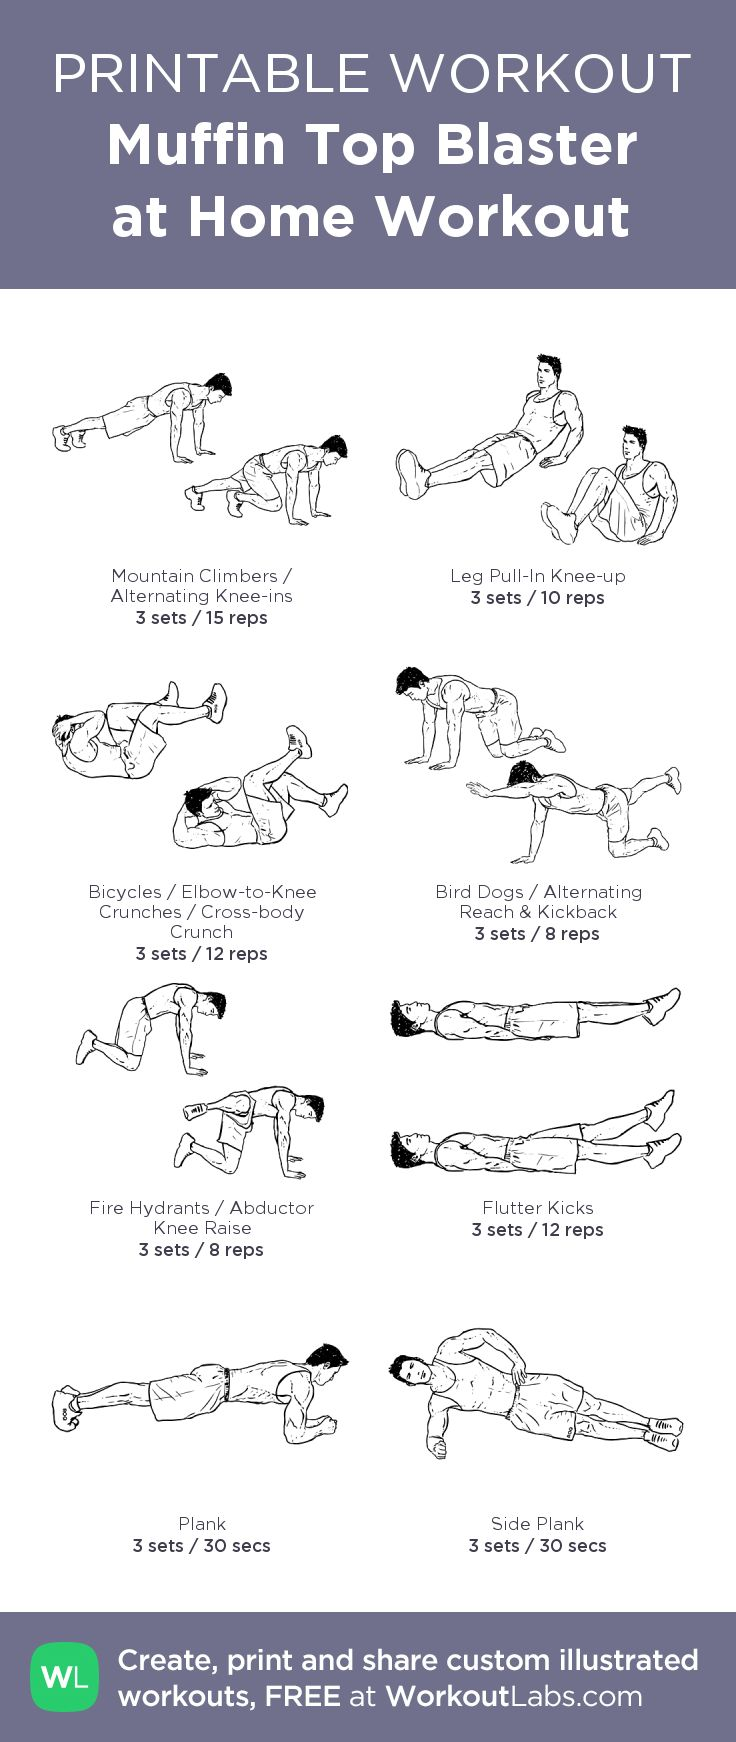 Muffin Top Blaster at Home Workout: my visual workout created at WorkoutLabs.com • Click through to customize and download as a FREE PDF! #customworkout